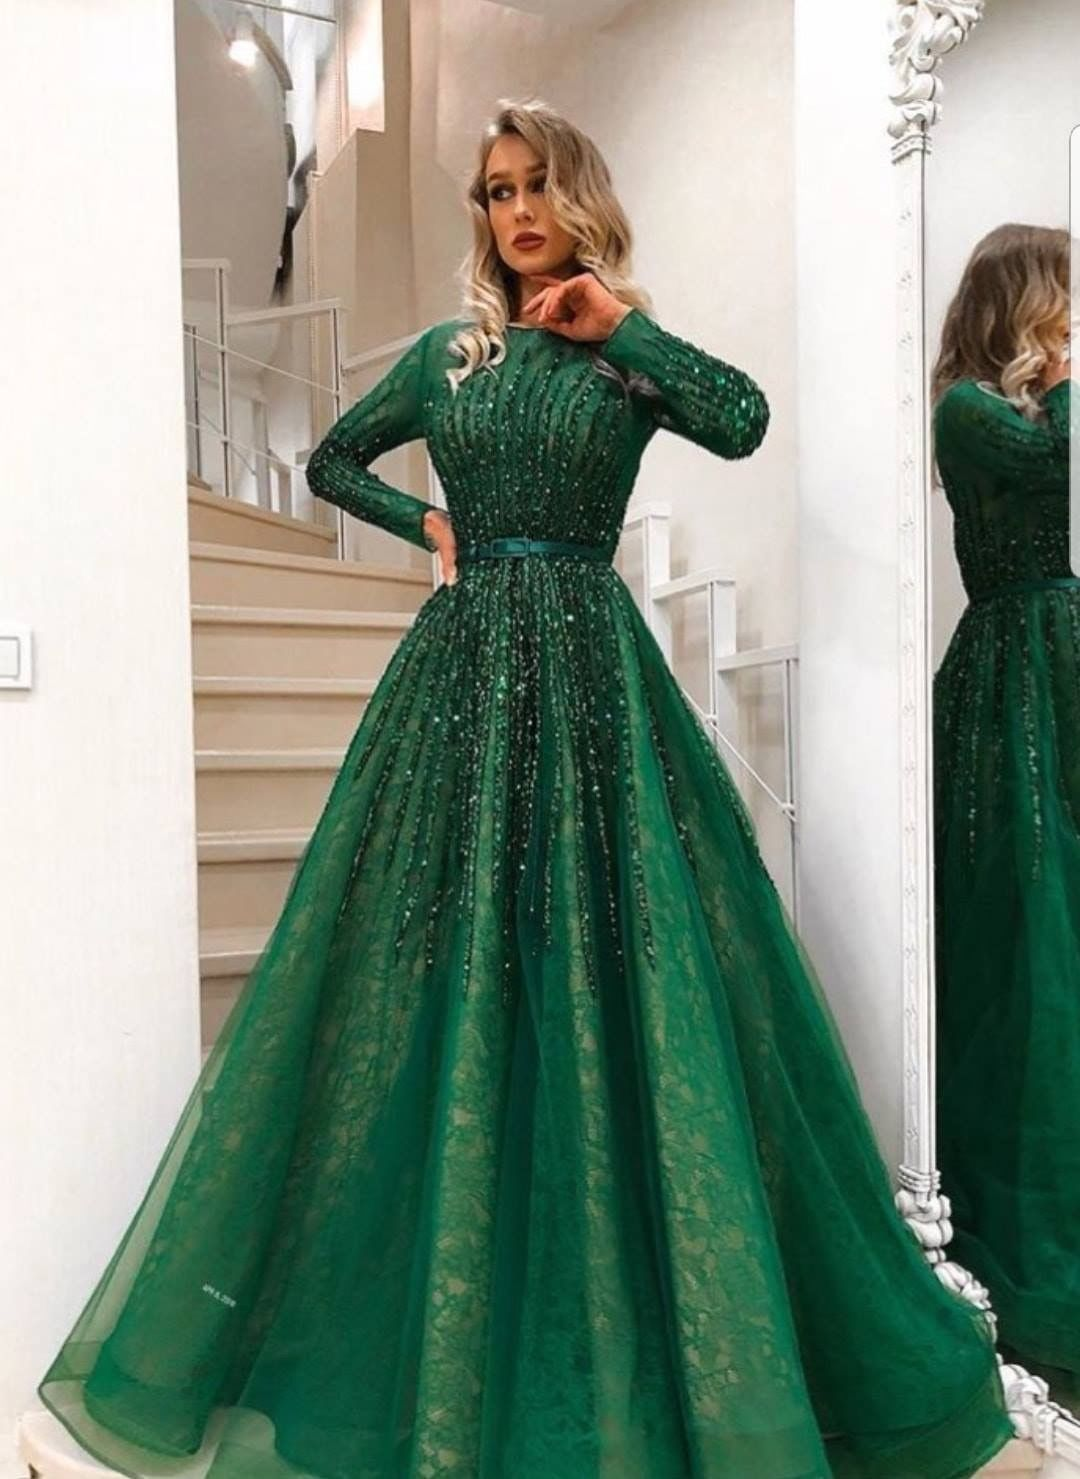 Green n gold dress  Pin by Chatun on Kleider  Pinterest  Dresses Fashion and Prom dresses